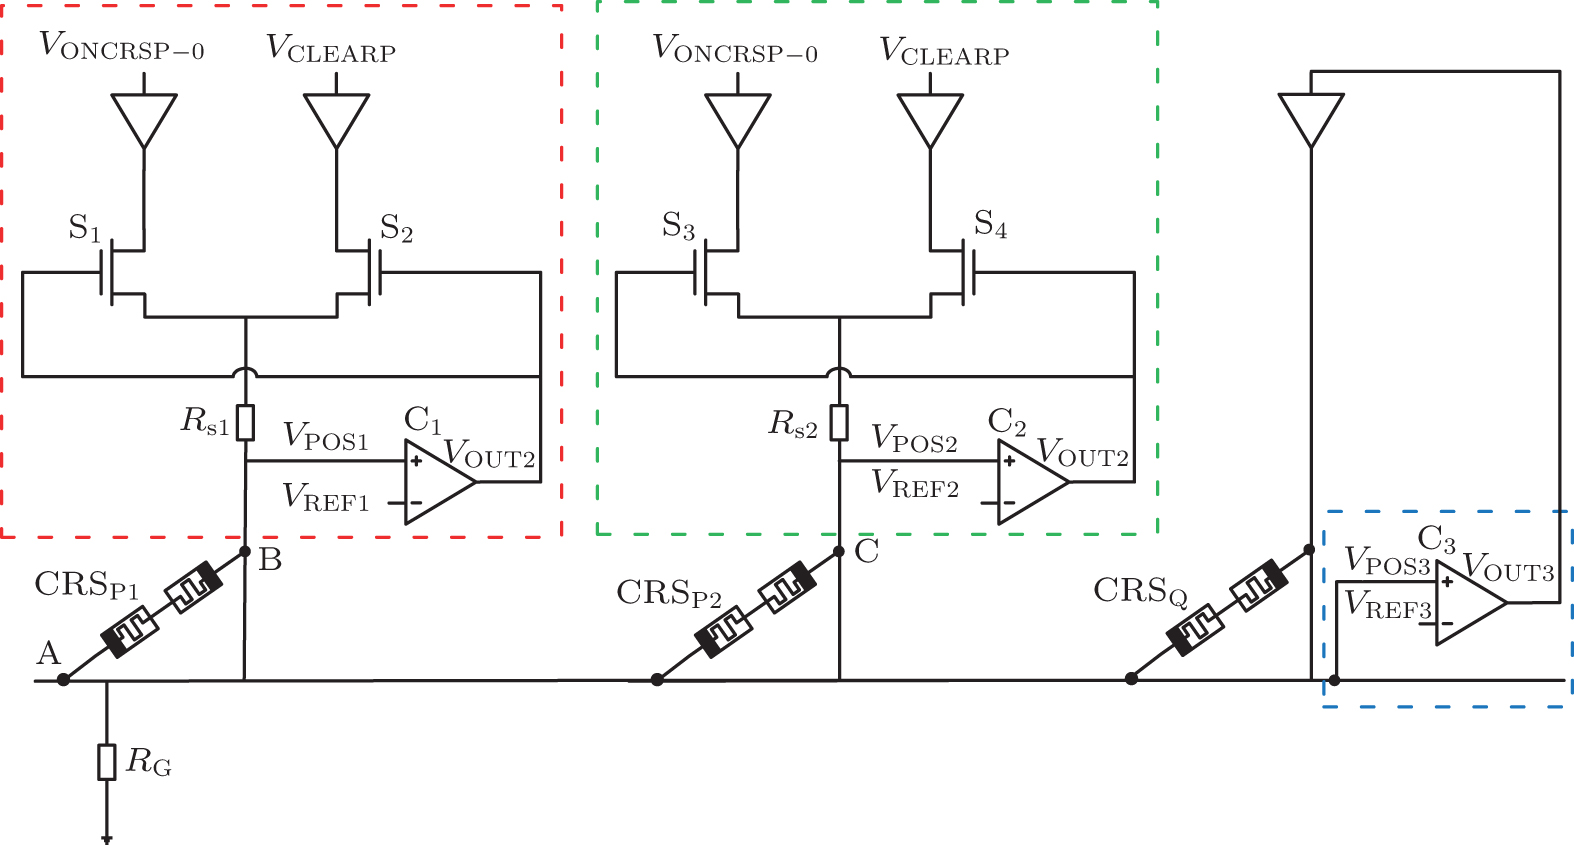 A Novel Circuit Design For Complementary Resistive Switch Based Logic Diagram Nand The Basic Structure Of Crs Operation Using Proposed